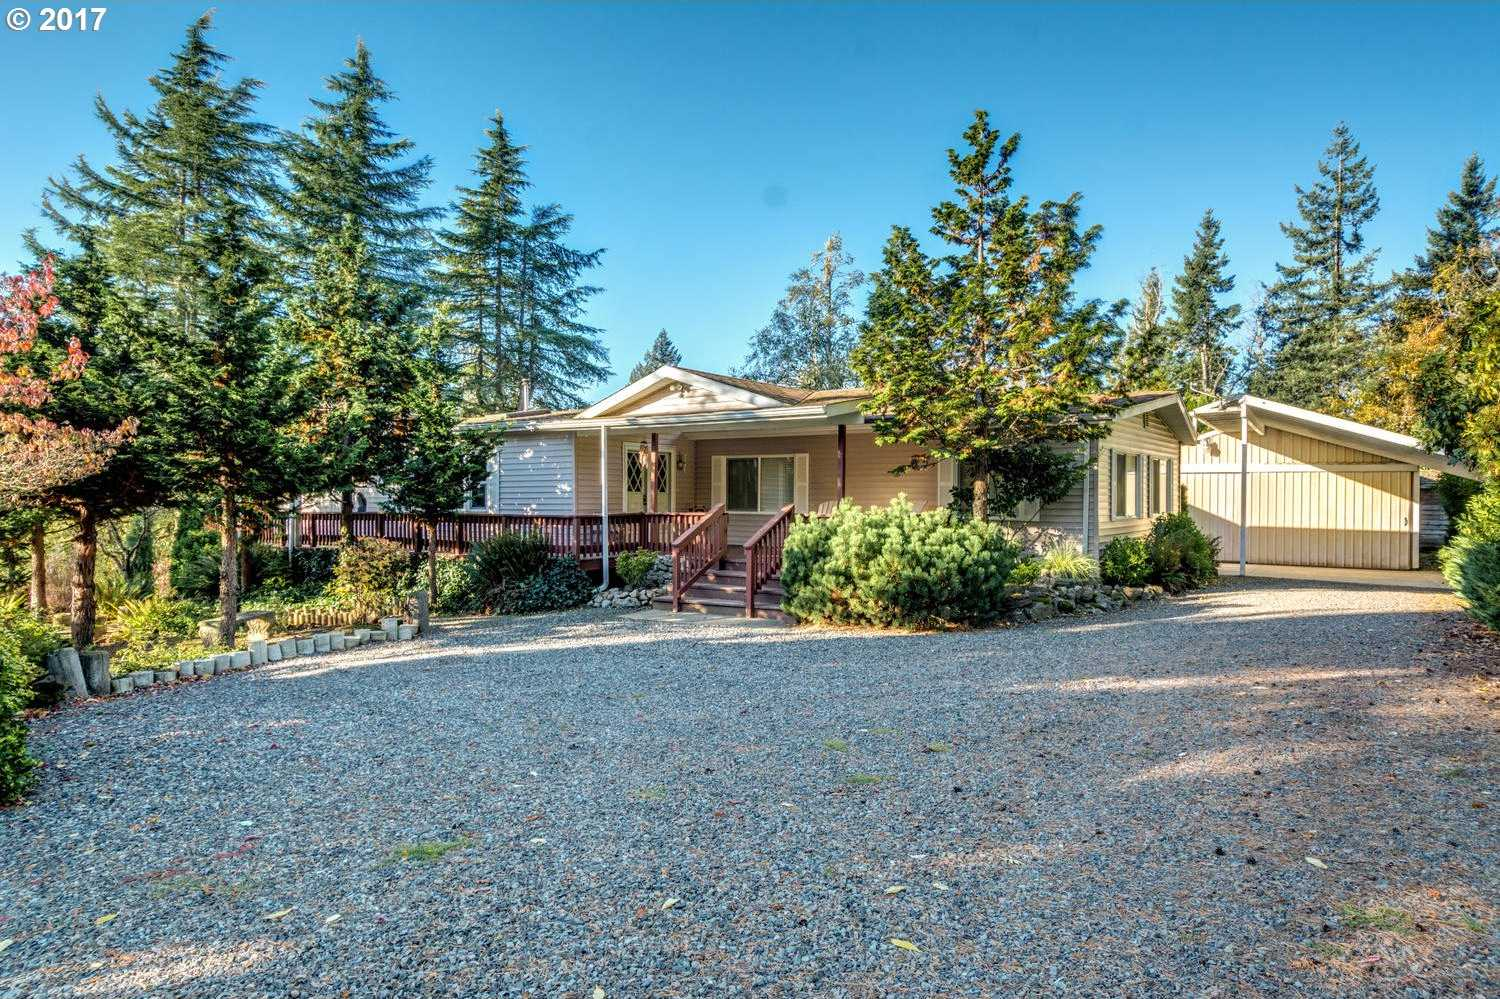 $697,000 - 3Br/2Ba -  for Sale in Troutdale